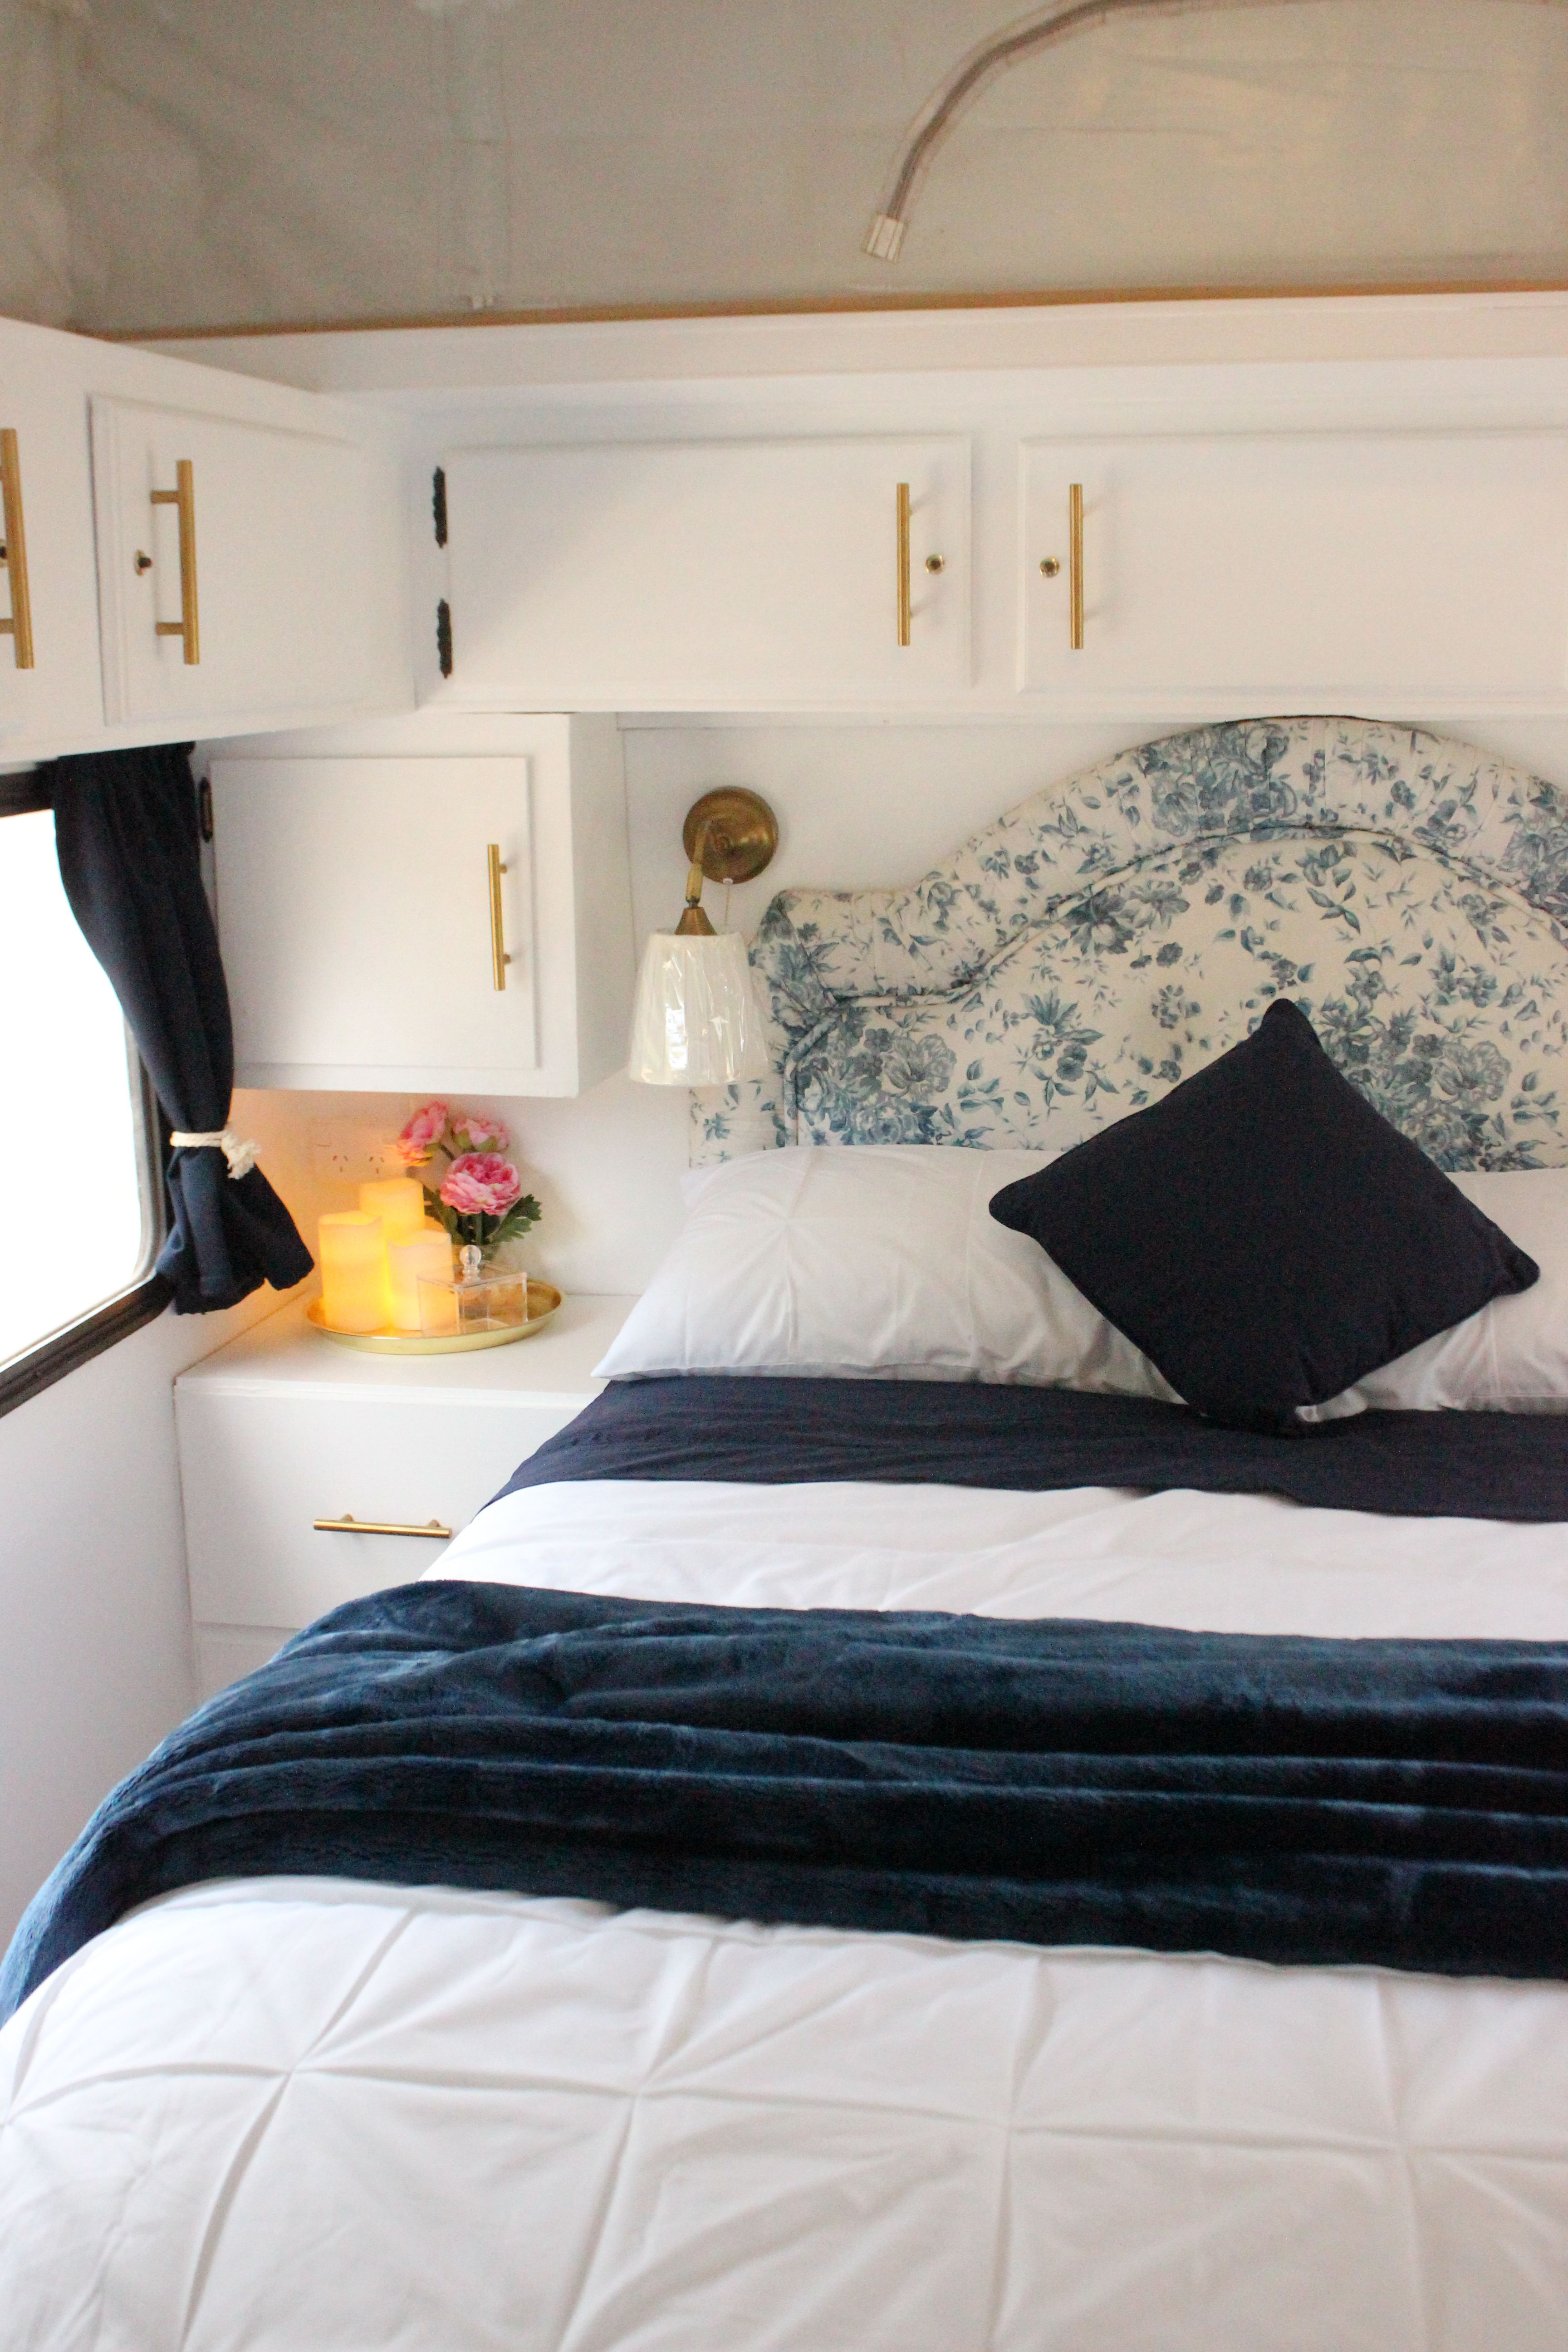 Main Bedroom Decor Pictures: Main Bedroom Double Bed With Lift Up Storage Underneath. 4